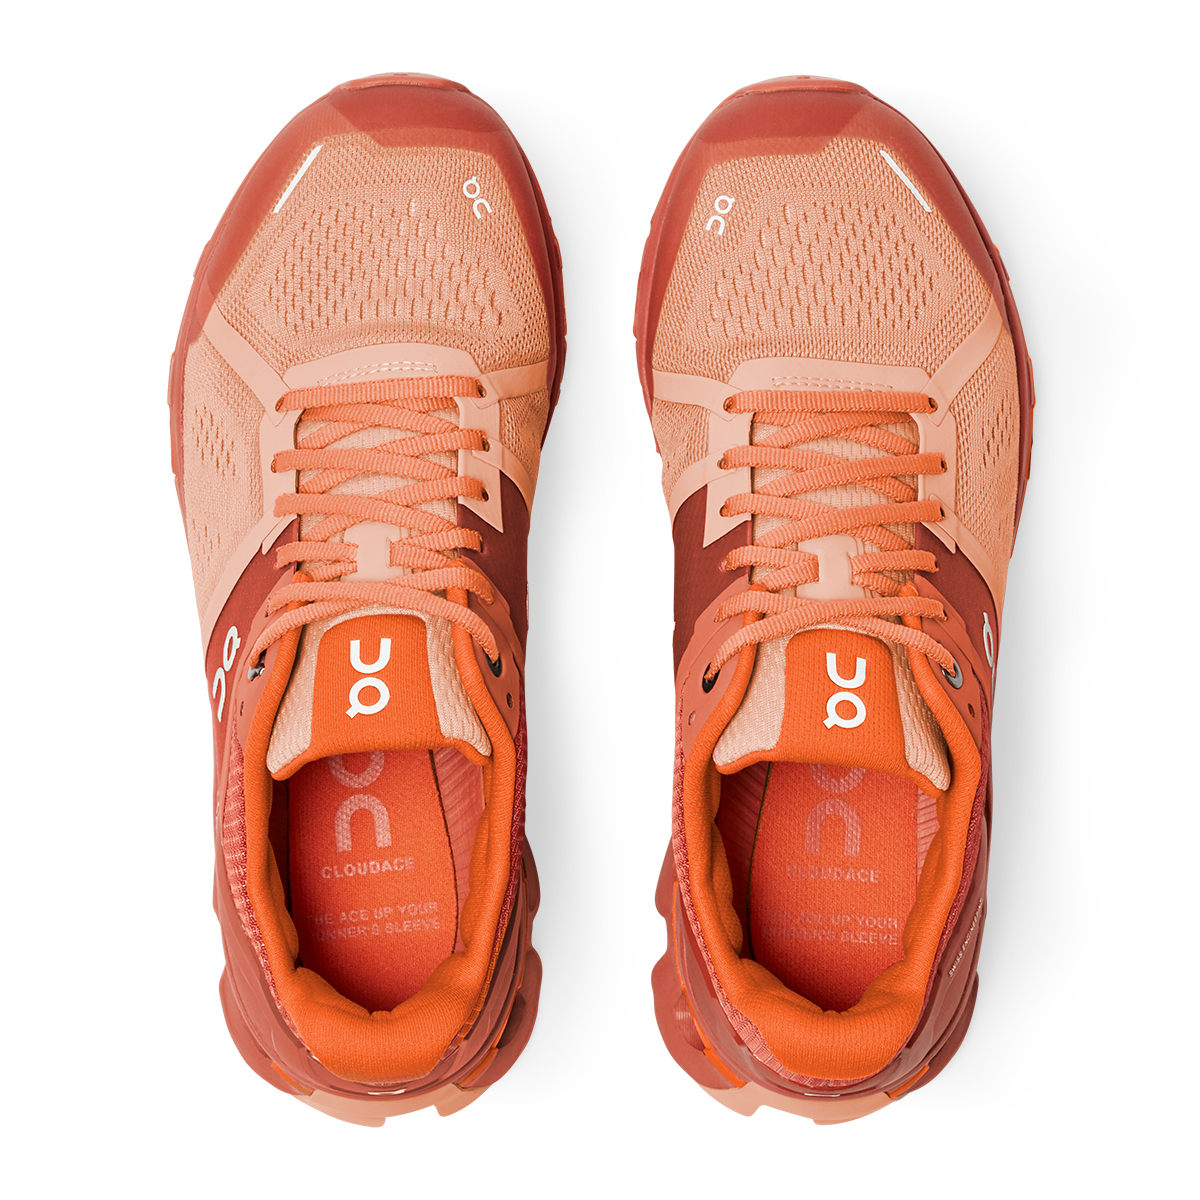 Women's On Cloudace Running Shoe - Color: Blush/Orange - Size: 5 - Width: Regular, Blush/Orange, large, image 3